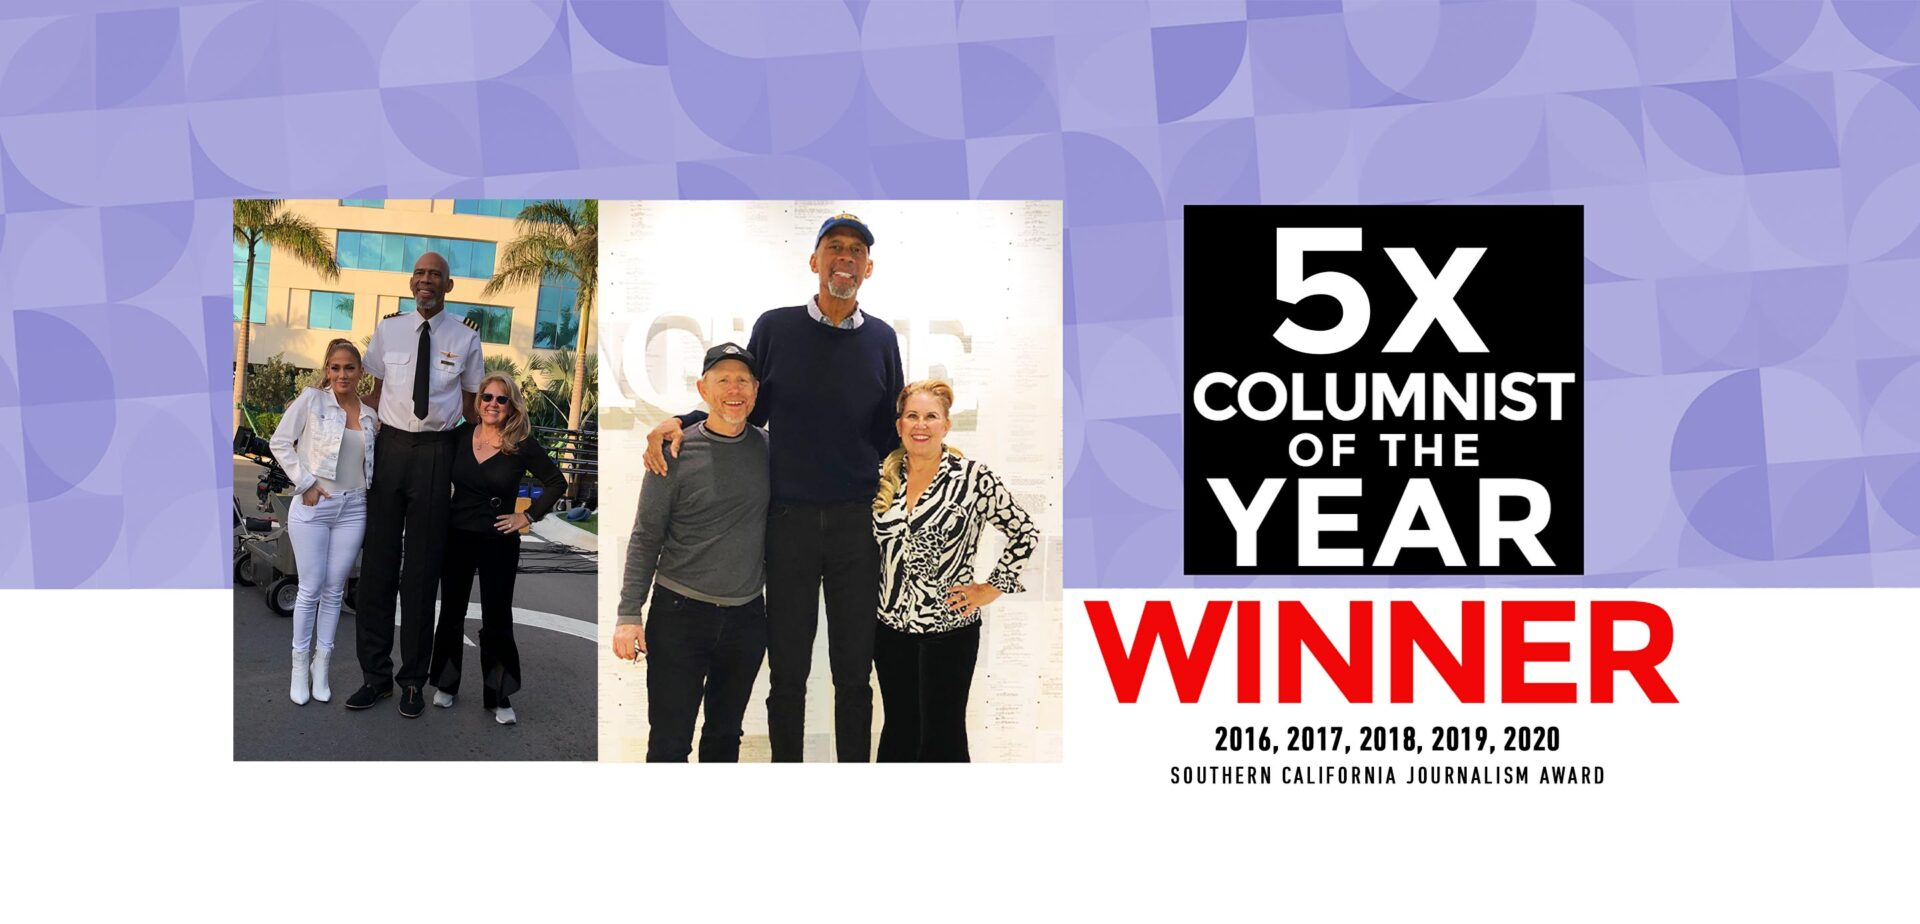 5x Columnist of the Year - Southern California Journalism Award